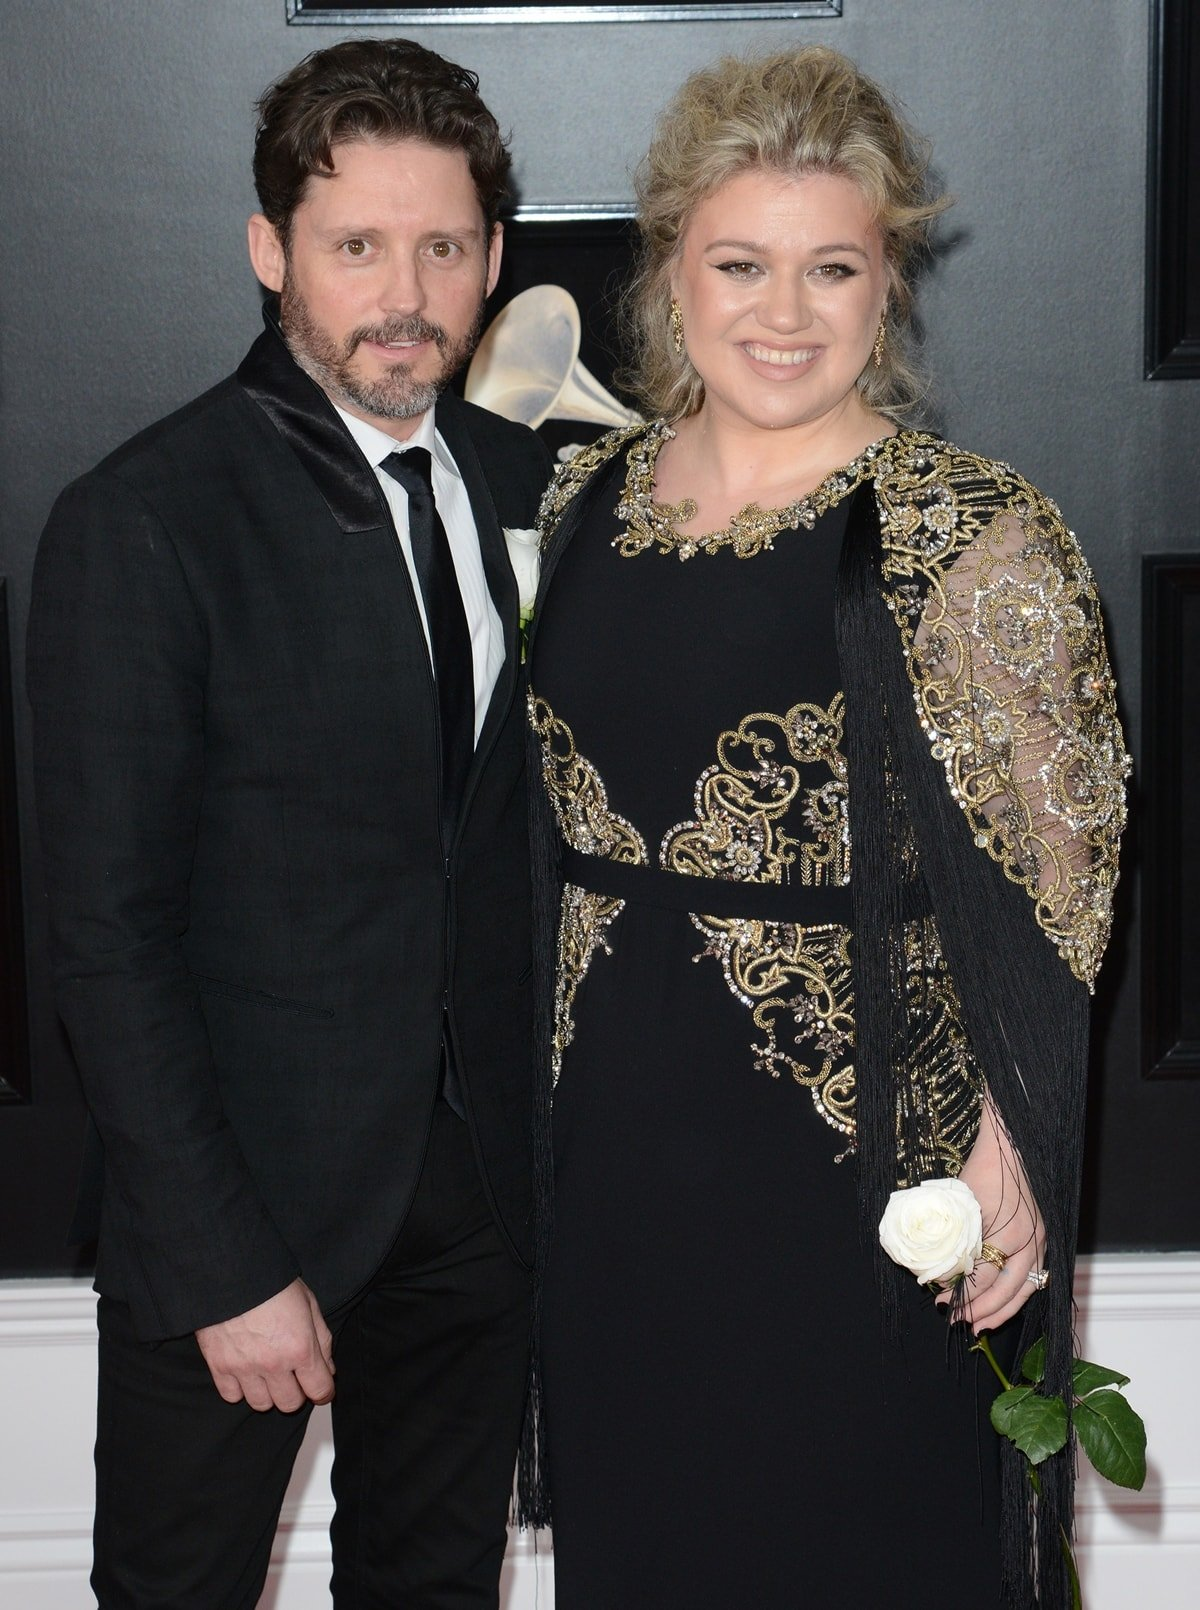 Kelly Clarkson and Brandon Blackstock met for the first time when she was rehearsing before the American Country Music Awards in 2006